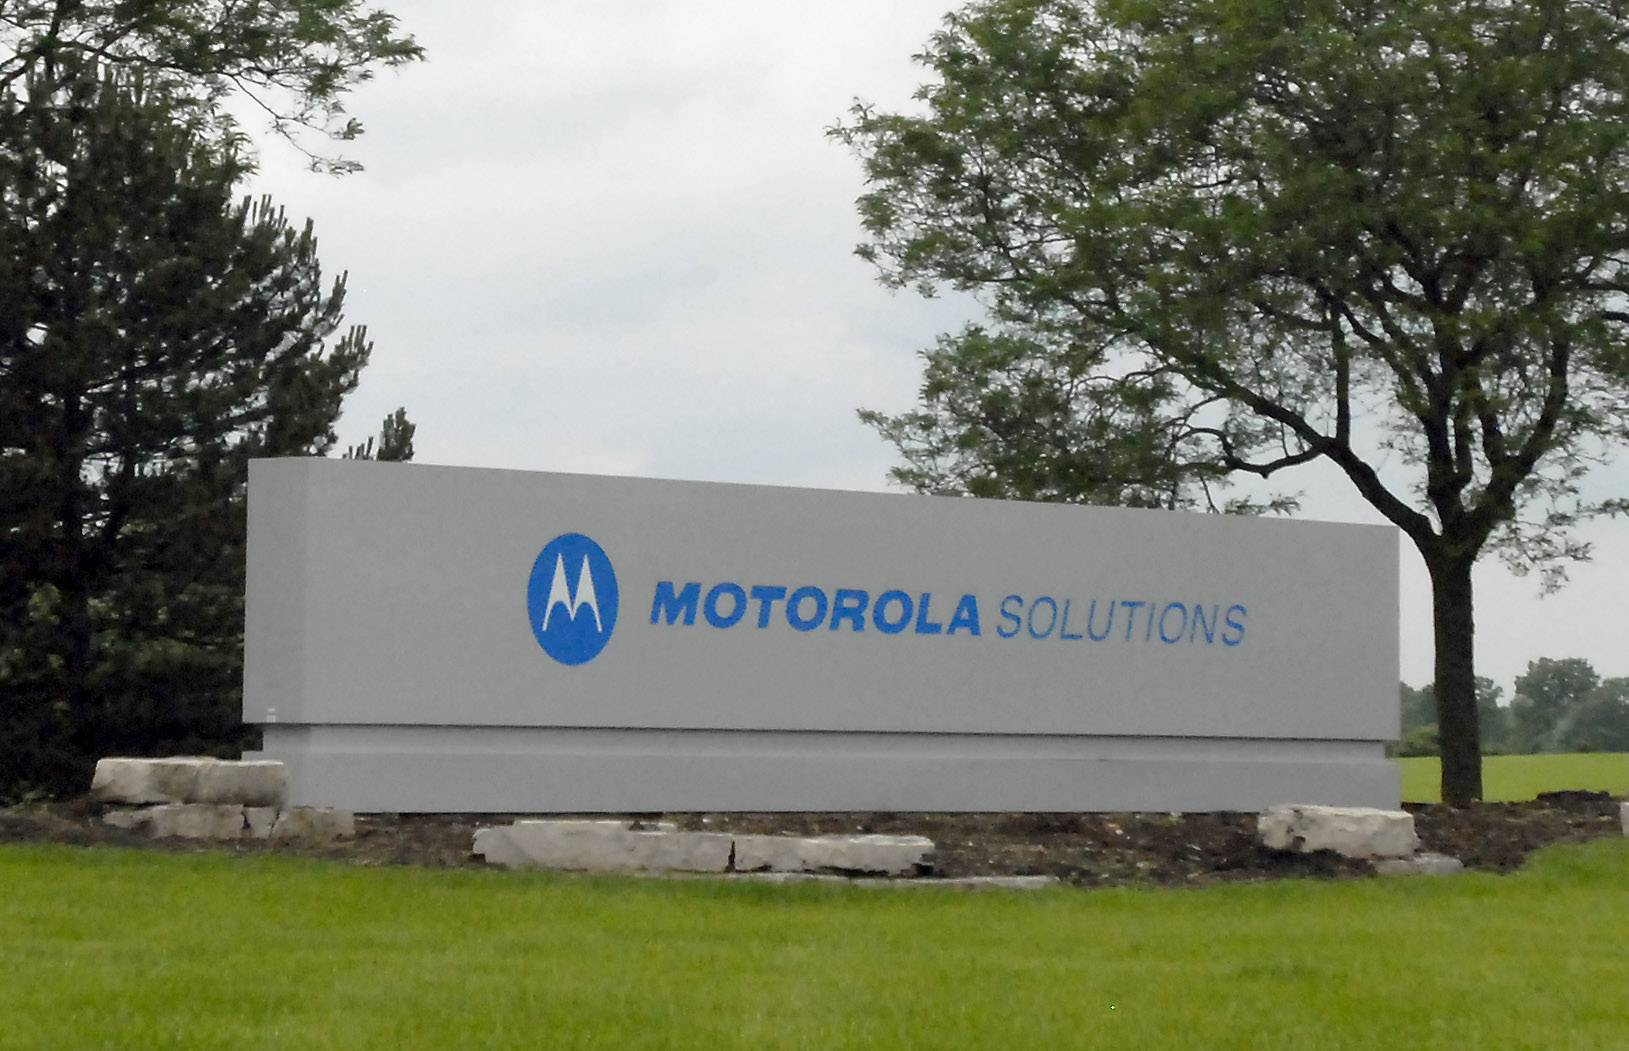 DAILY HERALD FILE PHOTO Motorola Solutions, with offices in Schaumburg, is introducing new communication solutions built specifically for the needs of police and first responders at a showcase this week.